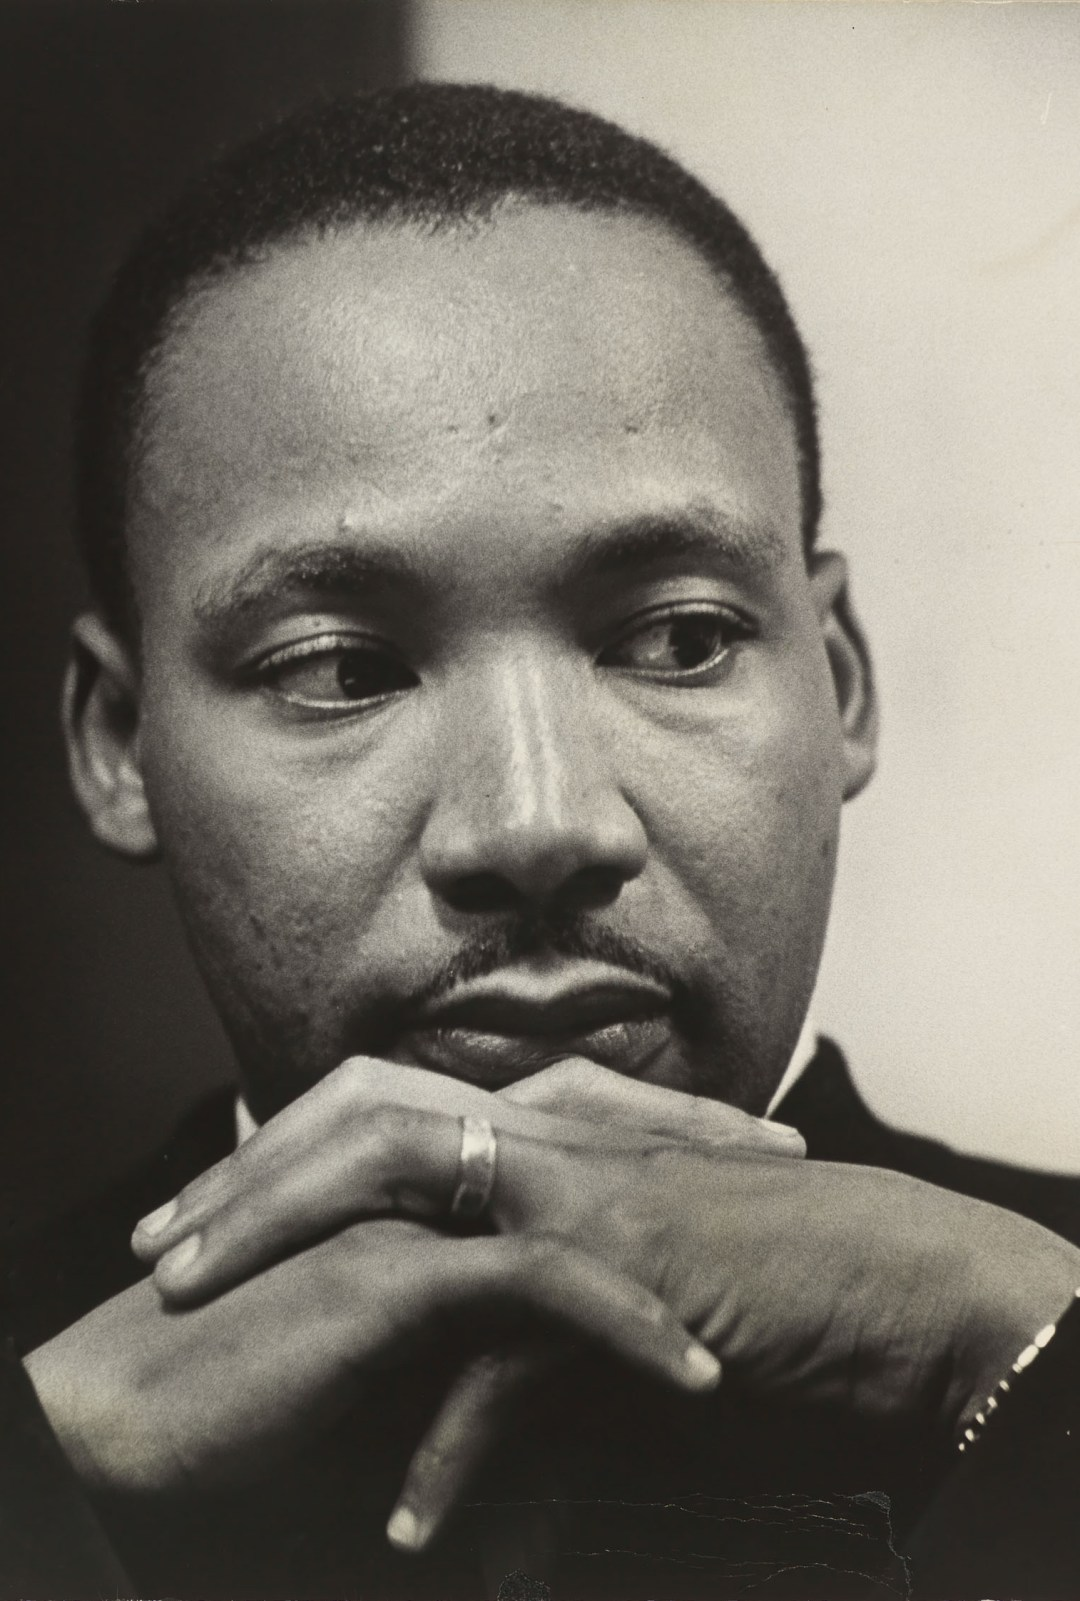 Black and white photographic portrait of Martin Luther King, Jr. looking slightly to the right